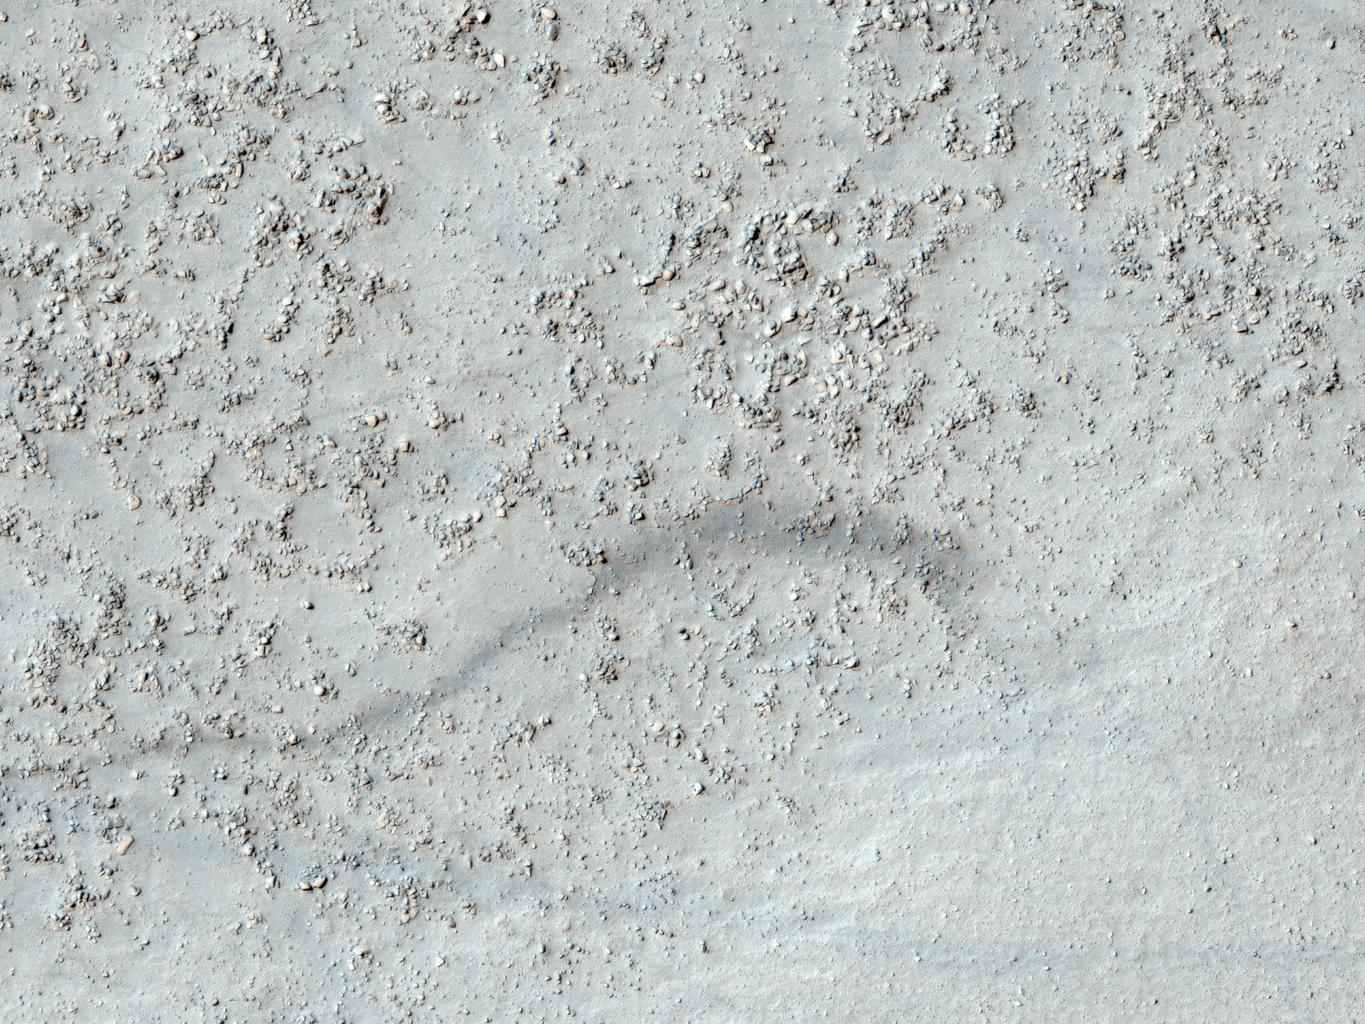 This image from NASA's Mars Reconnaissance Rover shows a degraded impact crater in the southern highlands. Part of the crater rim is visible at the top and bottom of the image, with the boulder-covered crater floor in the center.